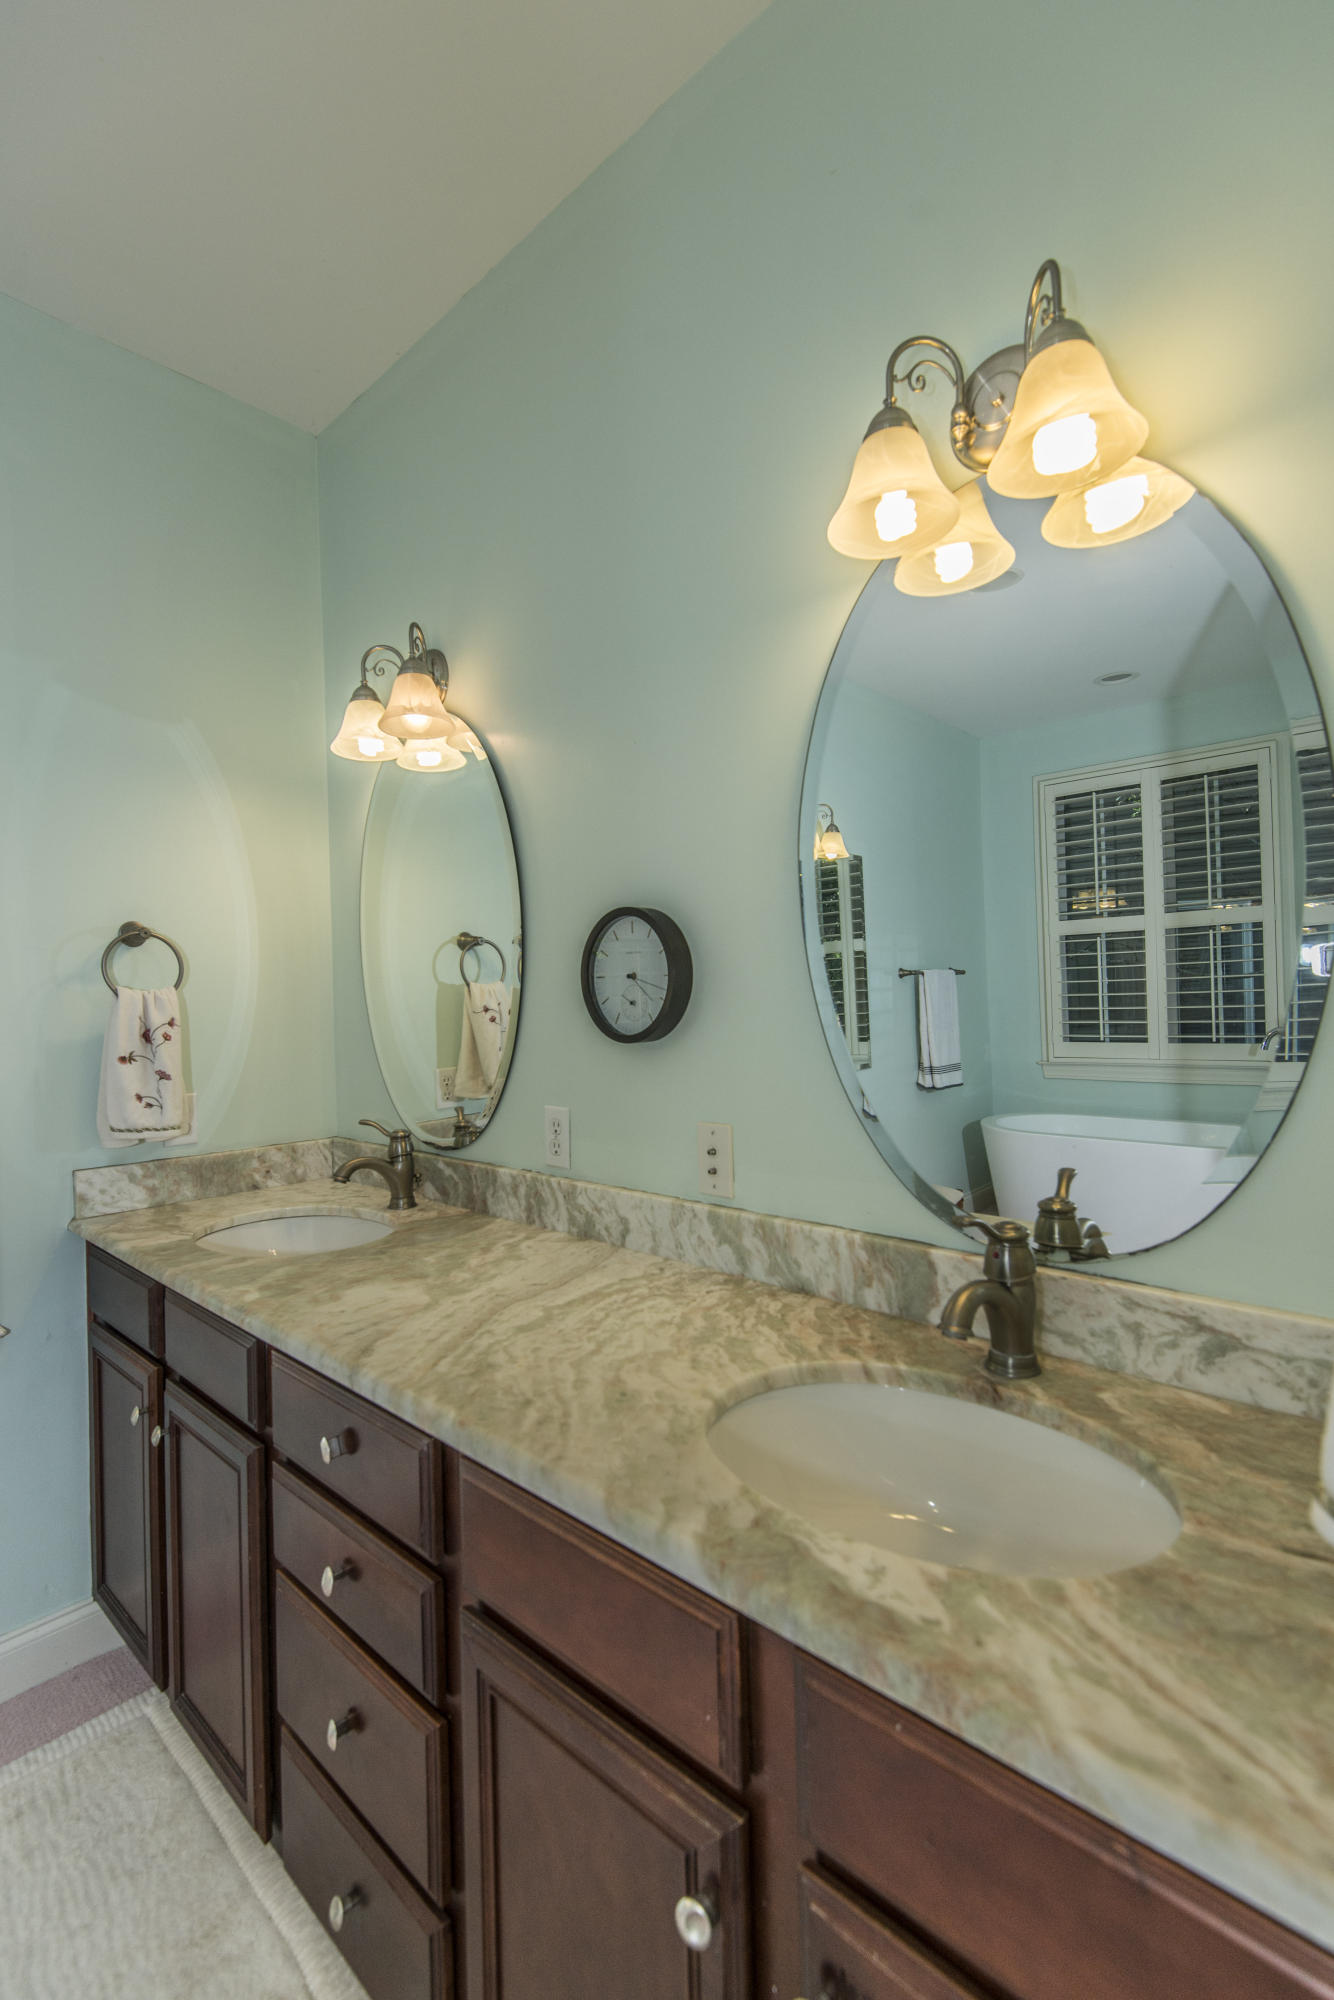 The Villages In St Johns Woods Homes For Sale - 4087 Amy, Johns Island, SC - 0